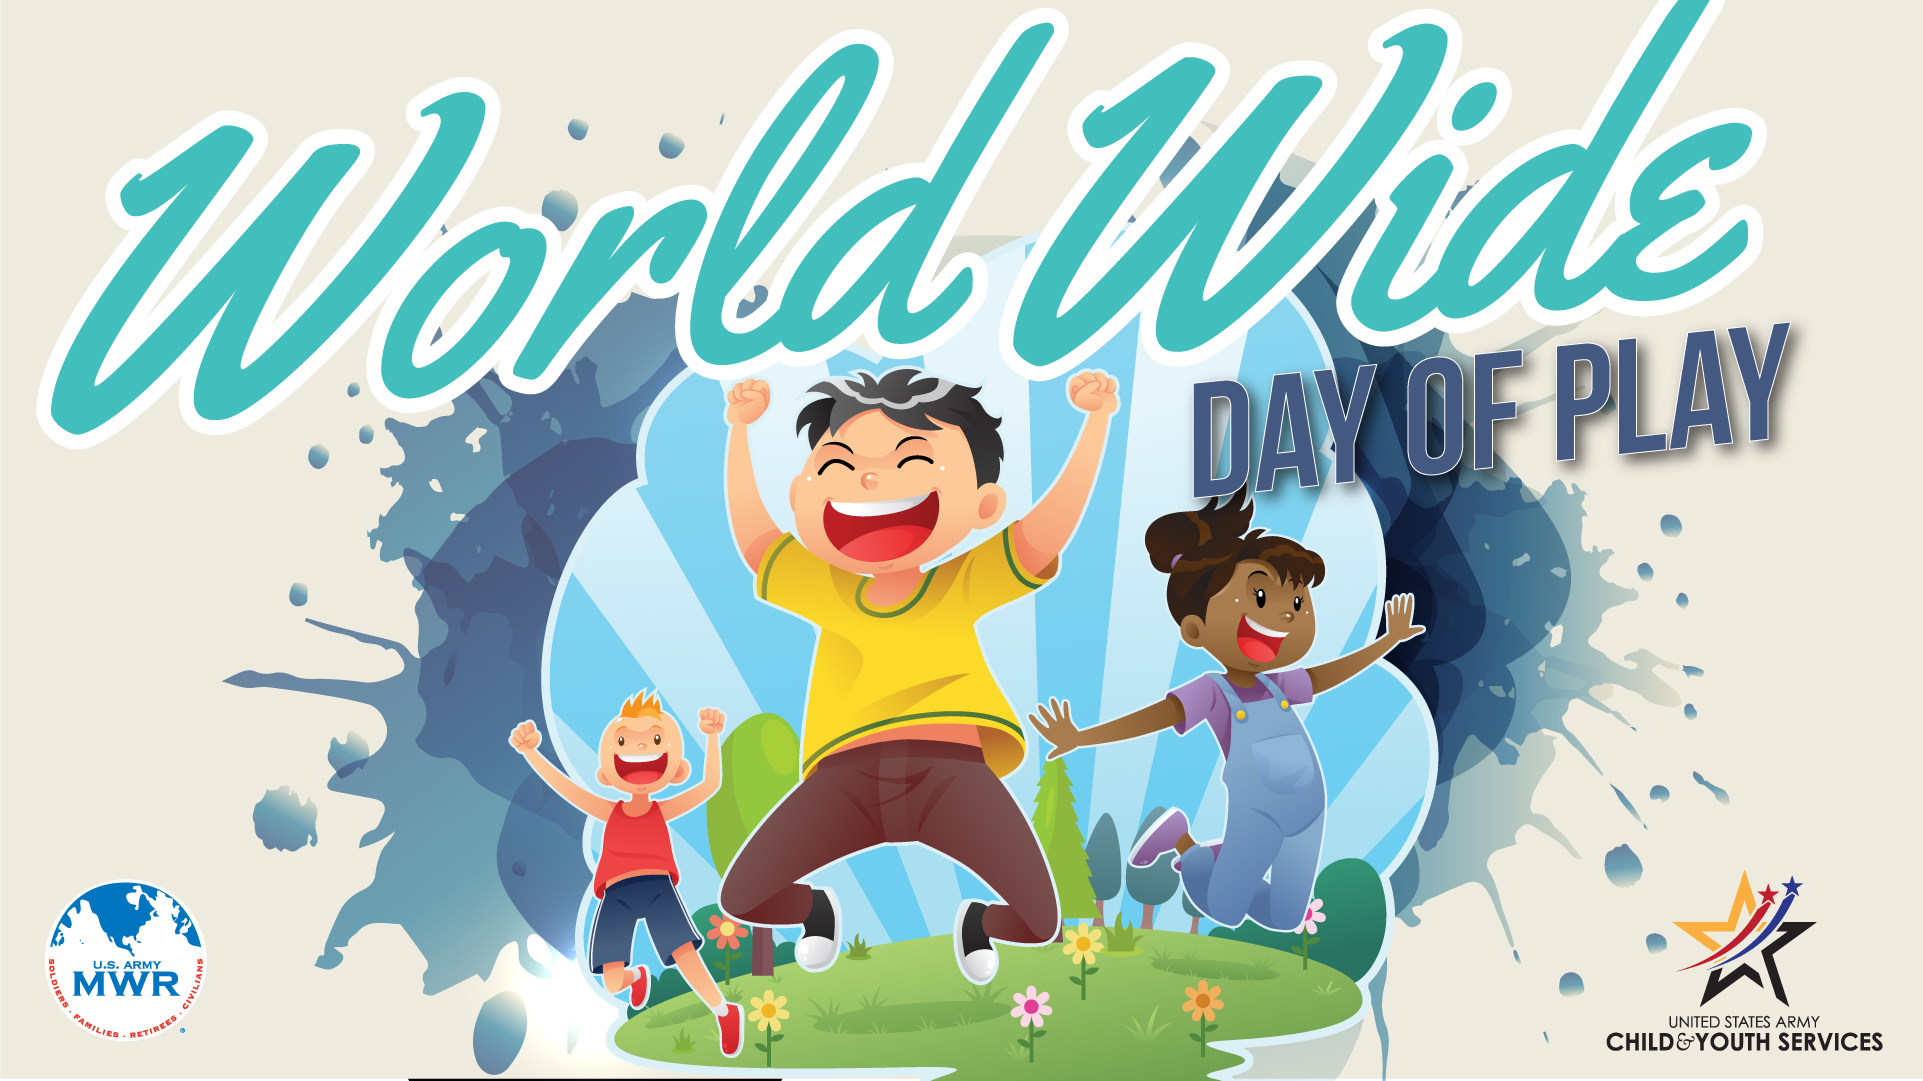 CYS World Wide Day of Play